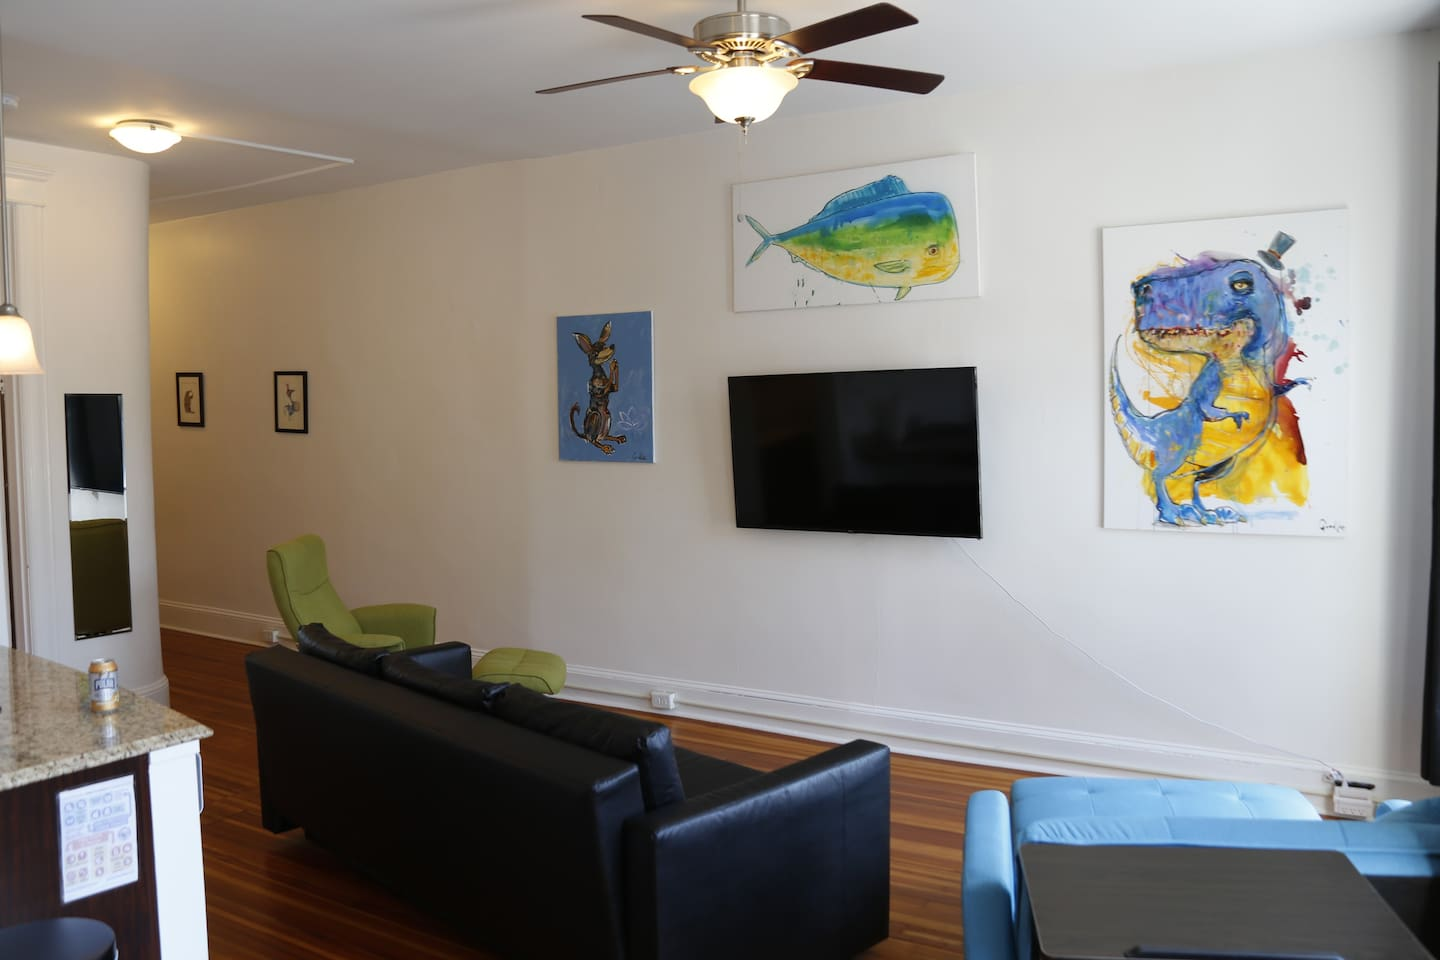 Goodloe Byron's colorful animal artwork graces the walls of his former home :D